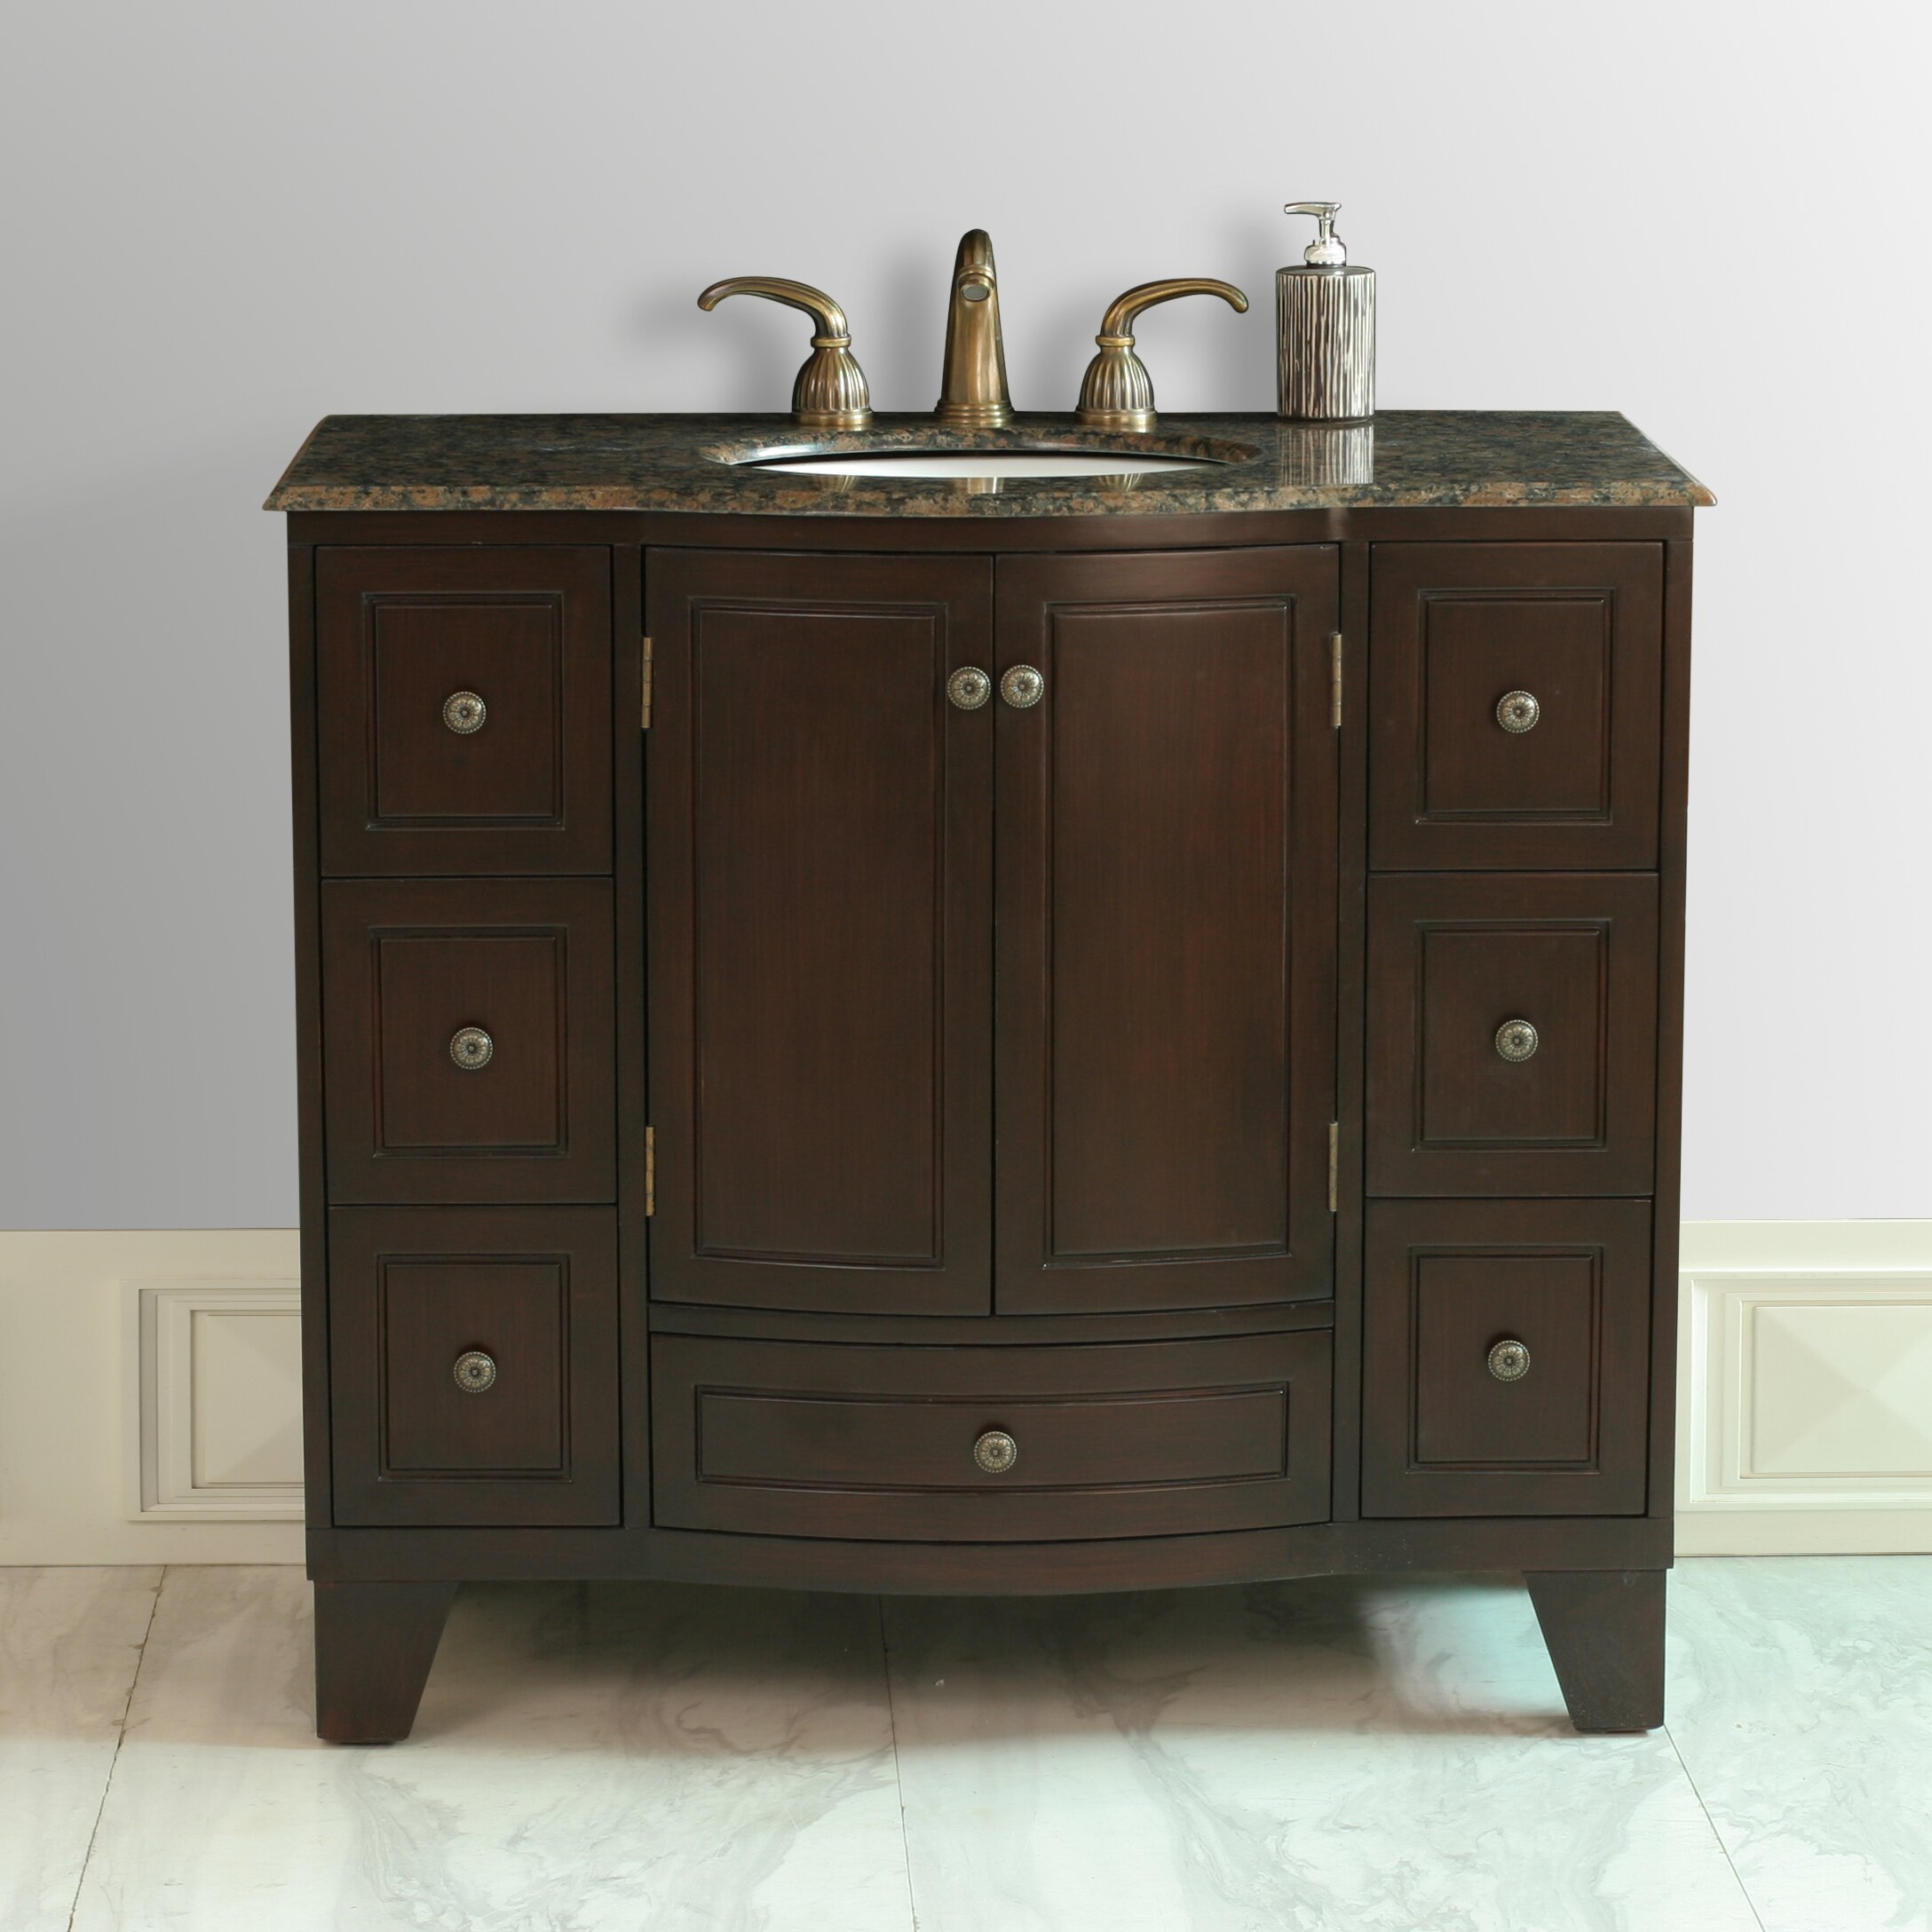 Dcor design lindenwood 40 single bathroom vanity set for Single bathroom vanity